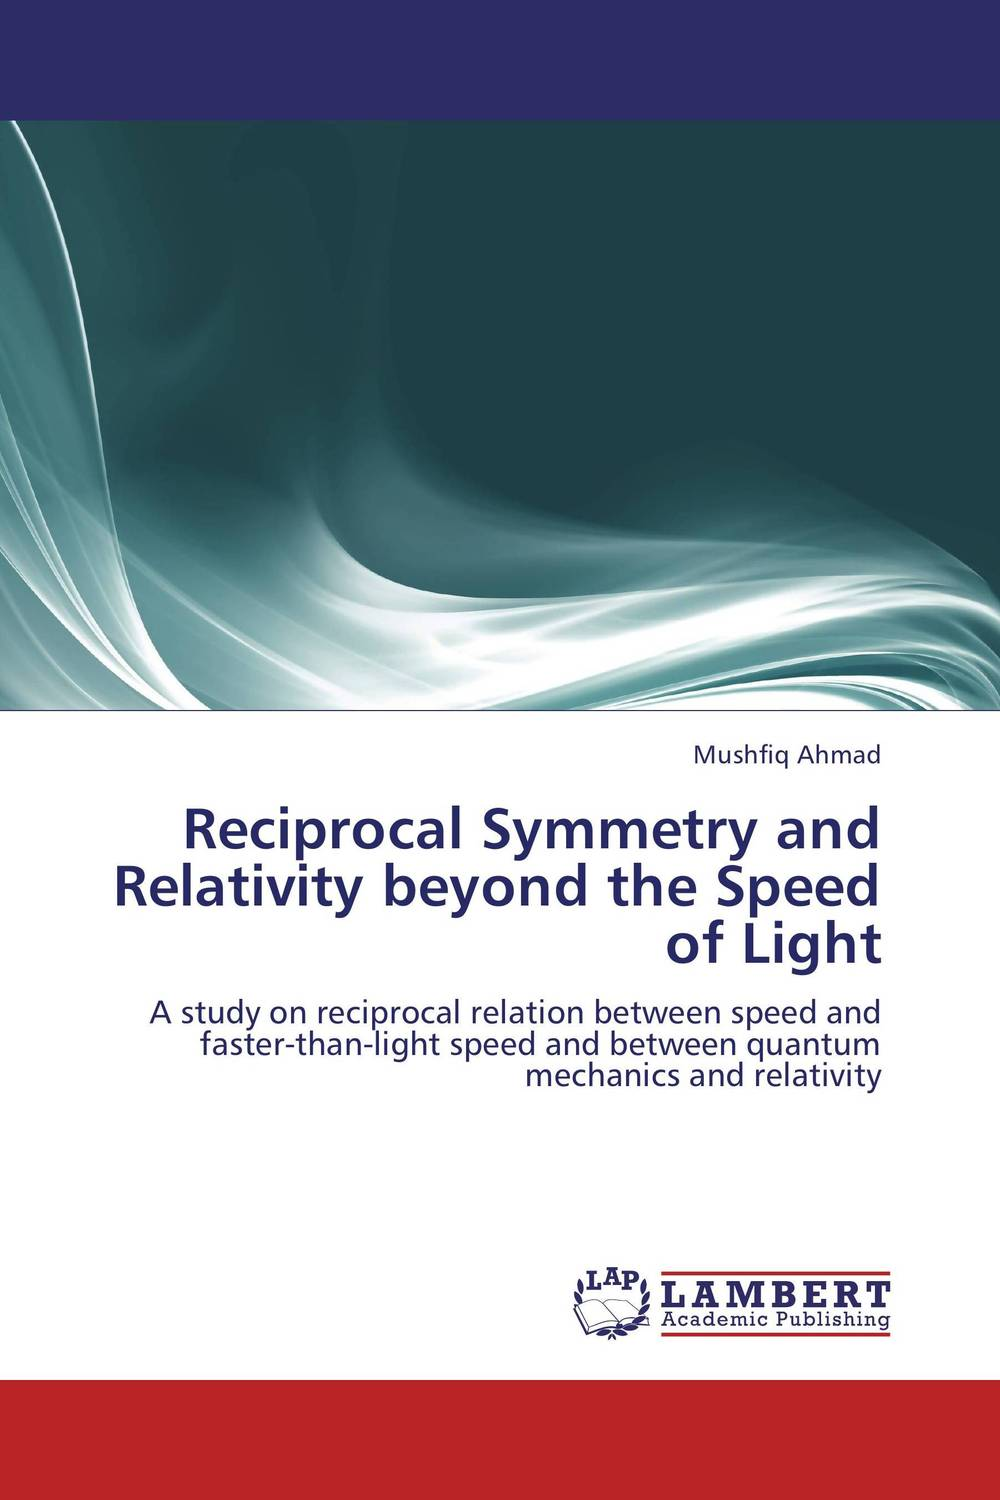 Reciprocal Symmetry and Relativity beyond the Speed of Light